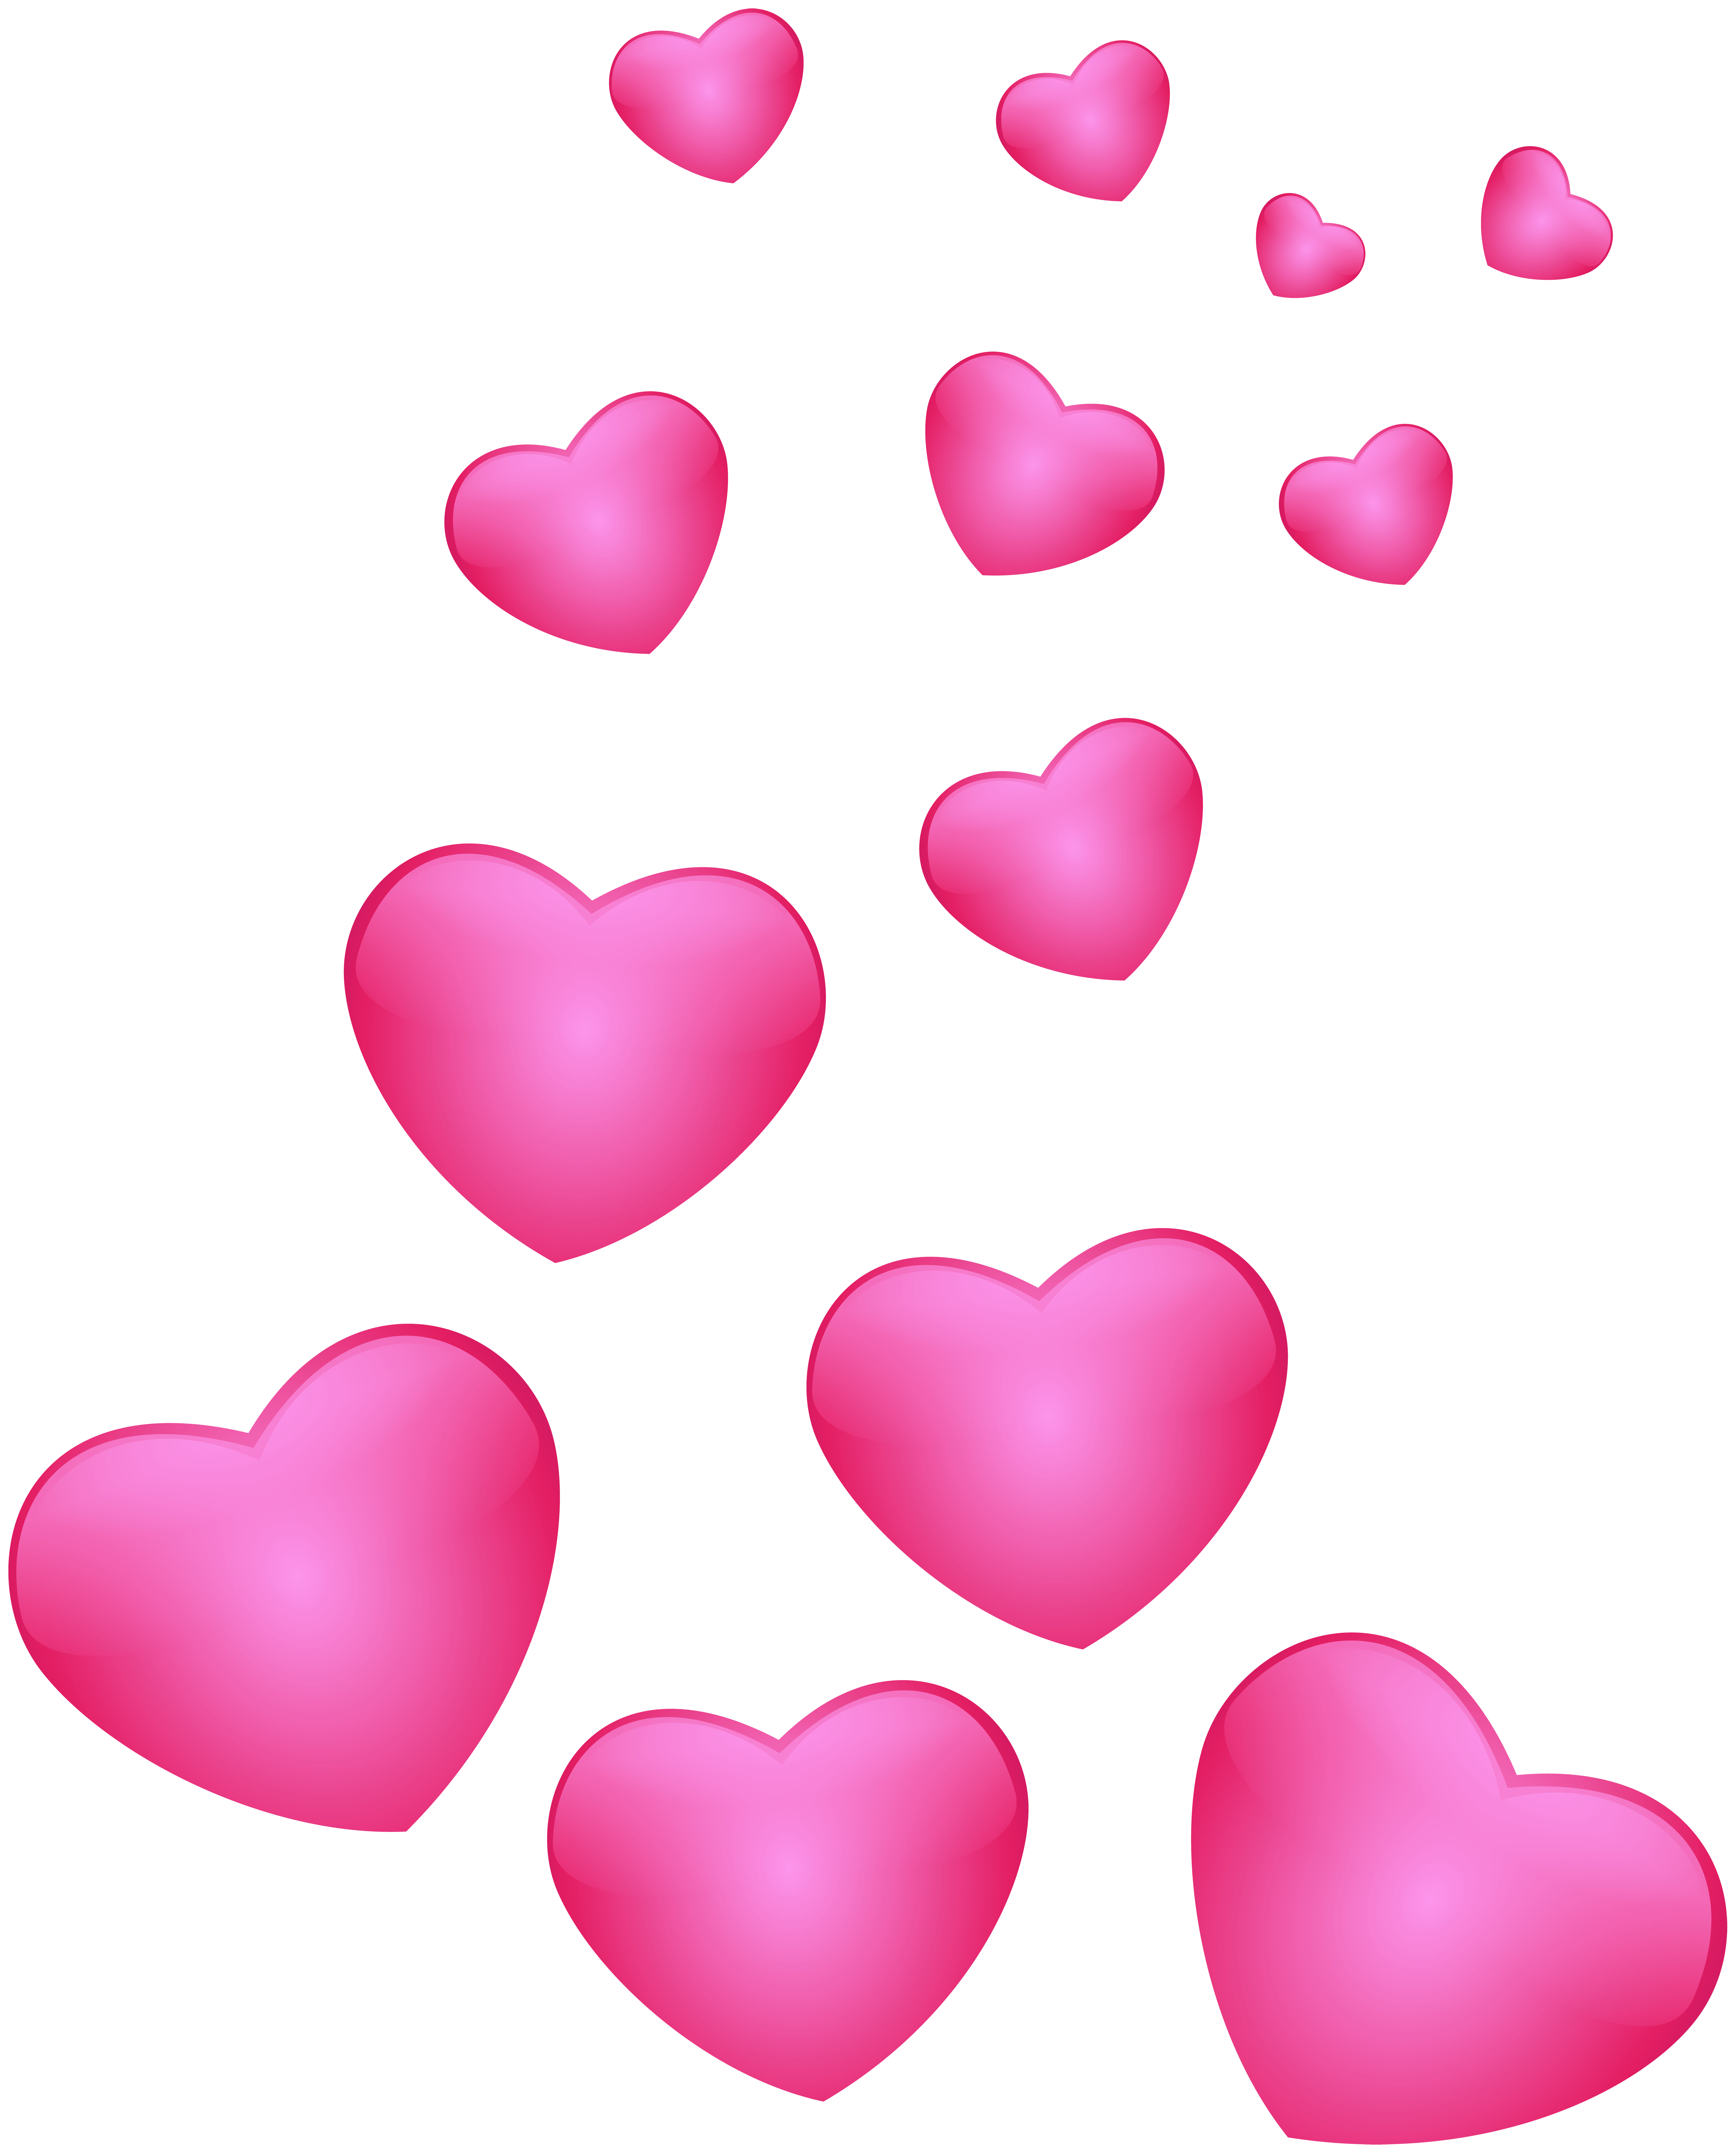 Hearts Pink PNG Clip Art Image.